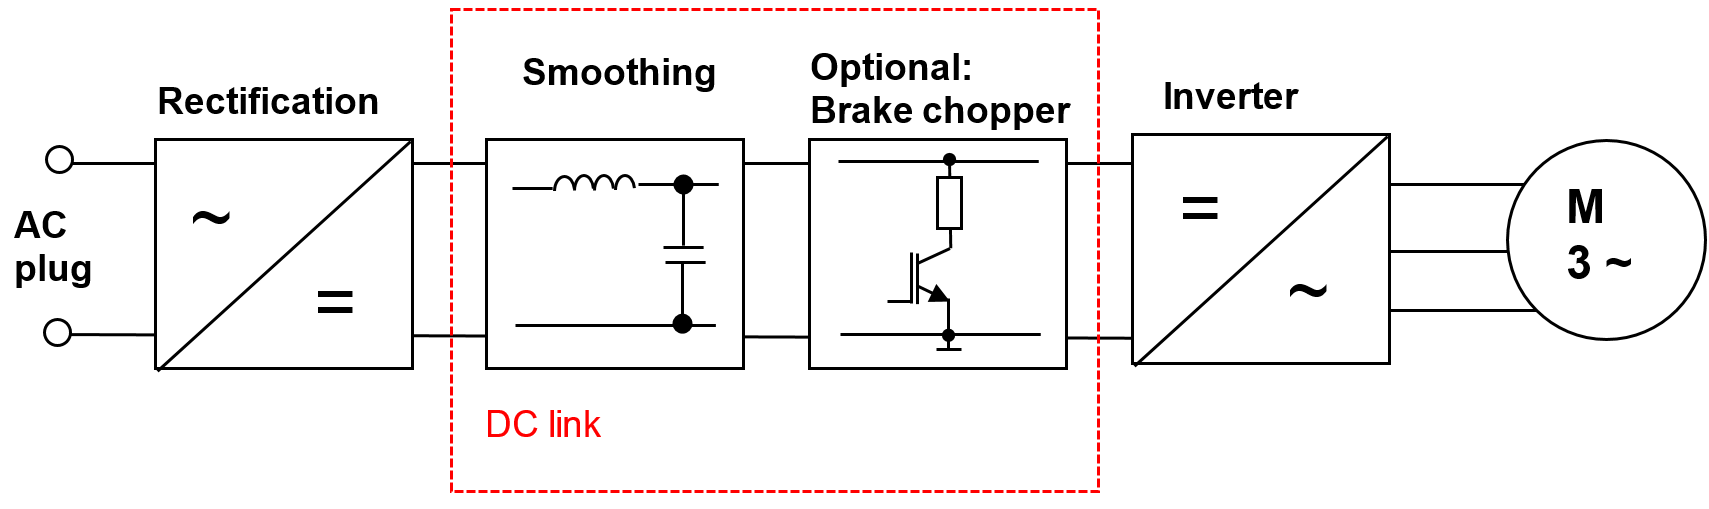 Structure of a VFD